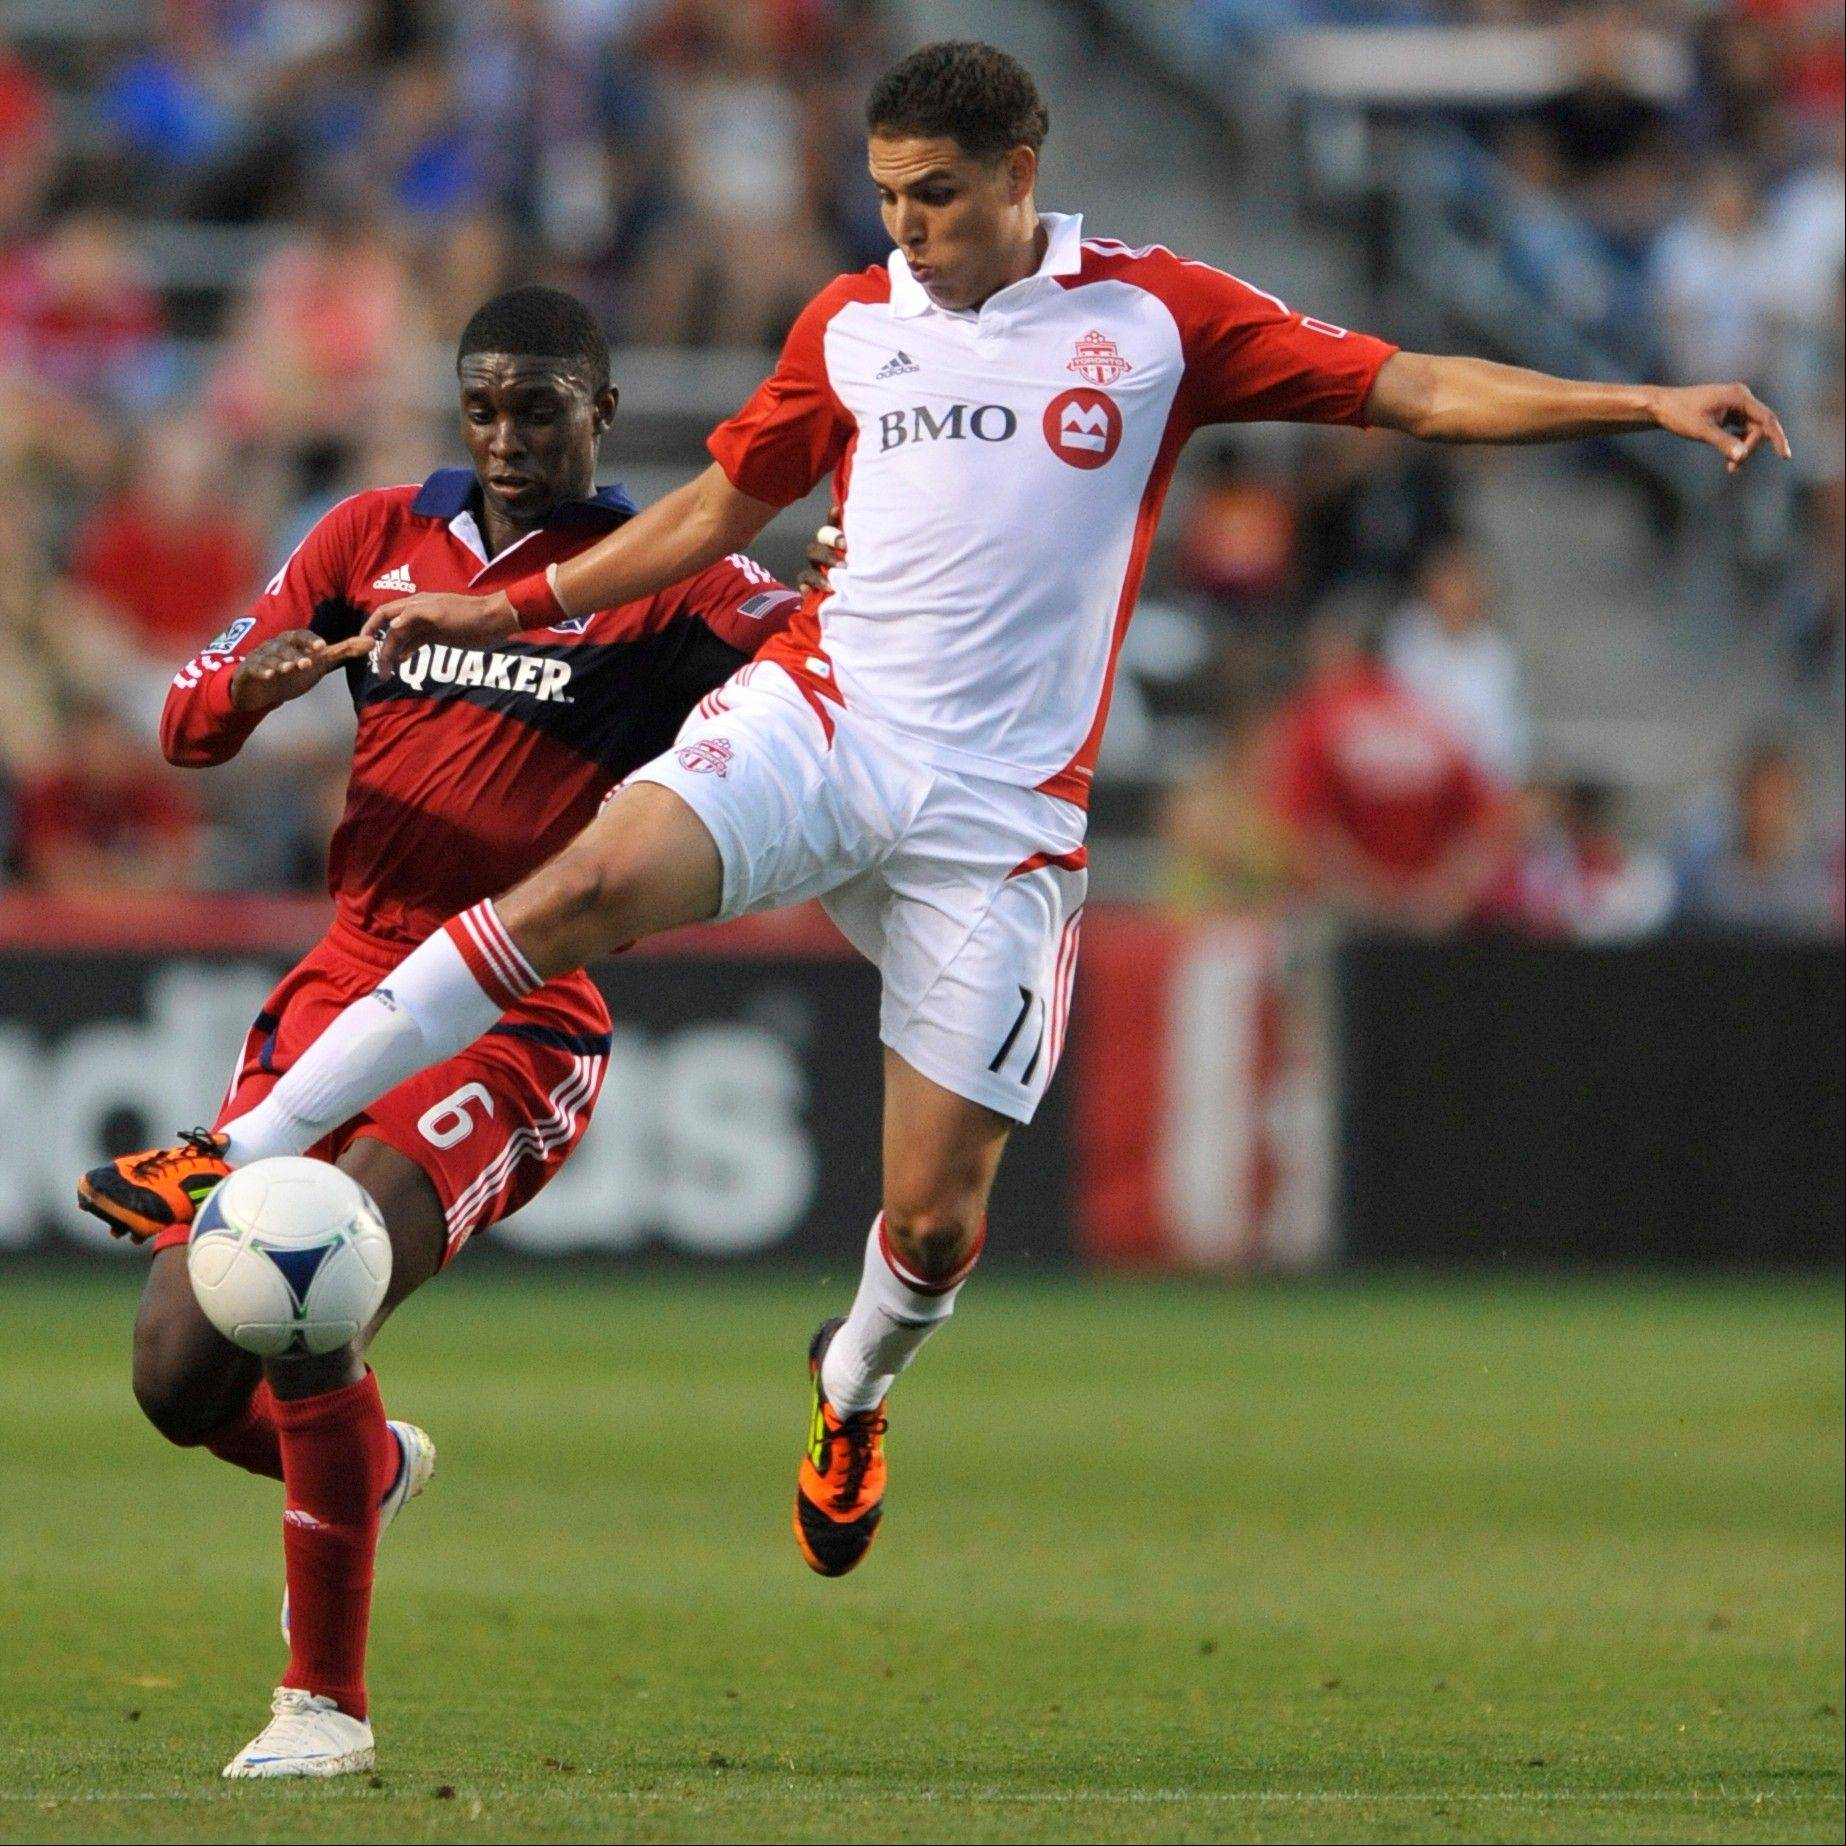 Toronto FC�s Luis Silva works against the Fire�s Jalil Anibaba for the ball in the first half Saturday night at Toyota Park.